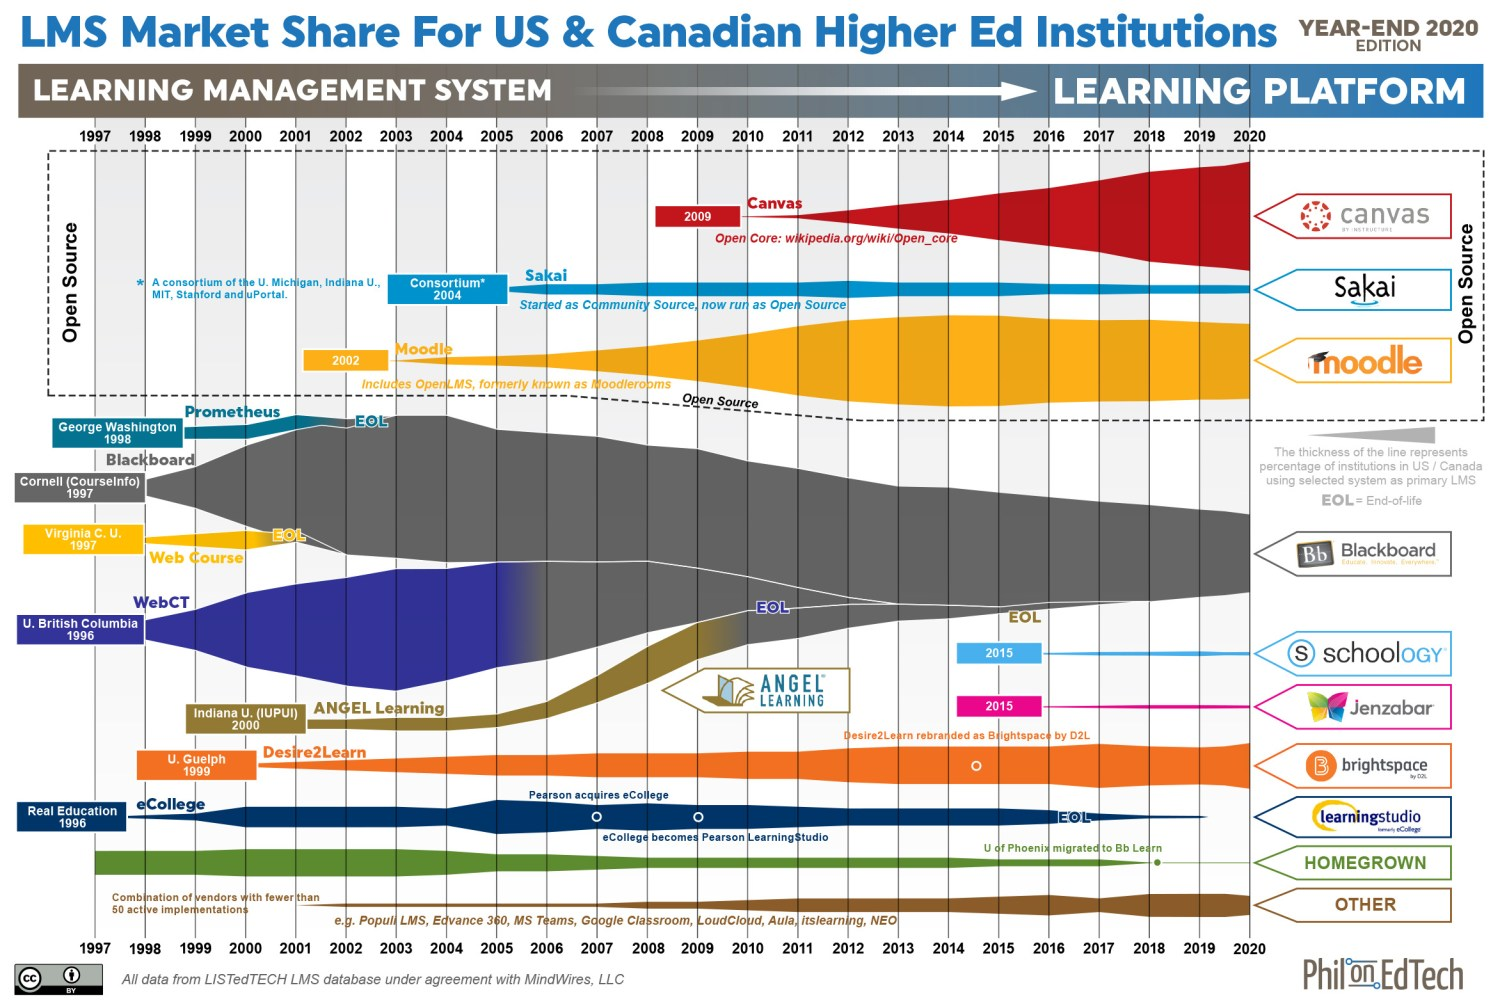 Year-end 2020 graphic of LMS market share for US & Canadian higher ed institutions